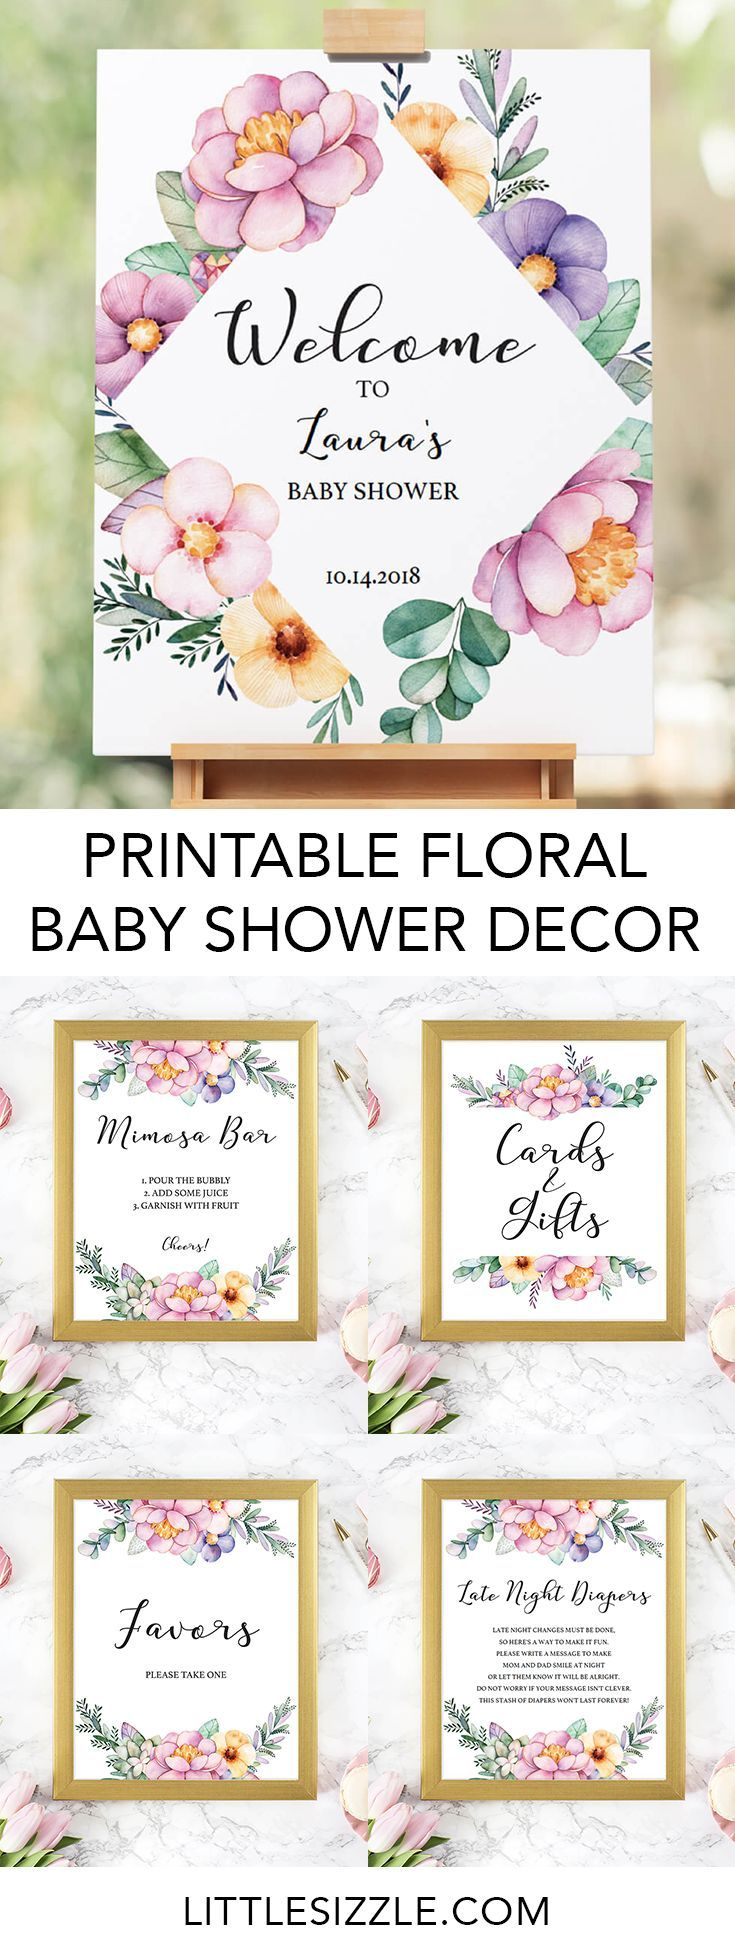 Printable Baby Shower Floral Decorations   Baby Showers & Gender - Free Printable Baby Shower Table Signs